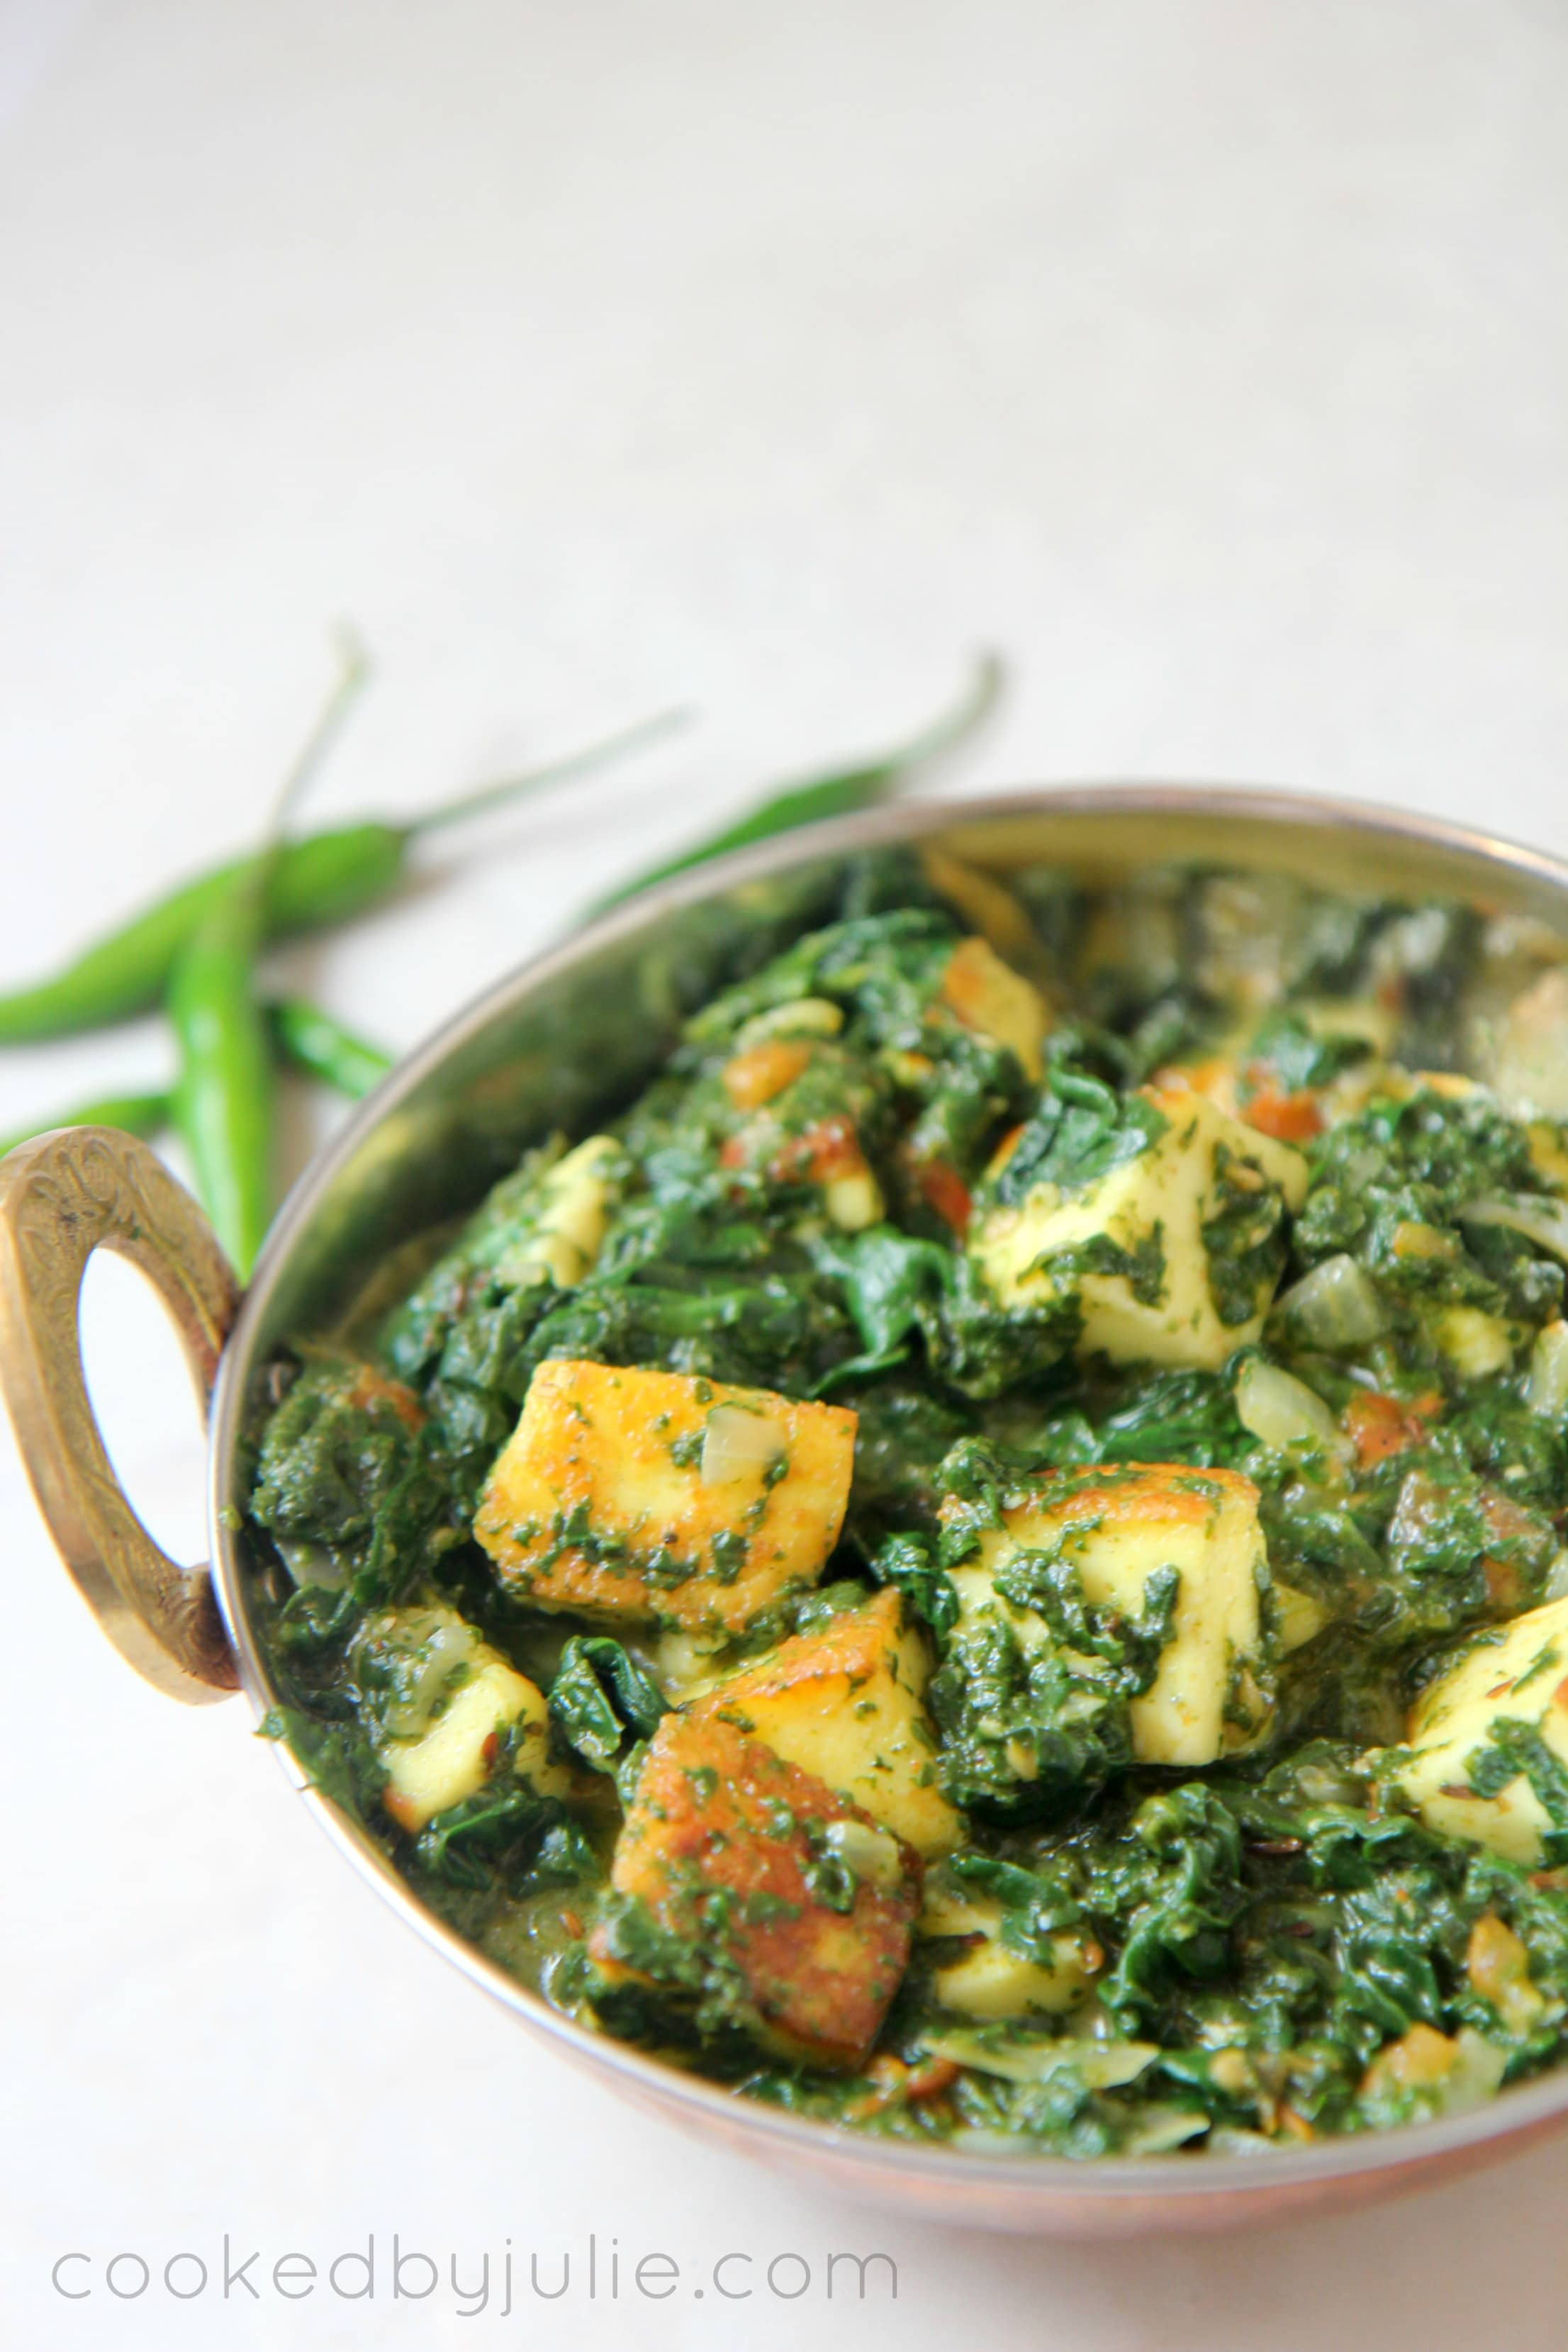 Paneer simmered with spinach and a fresh coriander gravy, seasoned to perfection for a delicious Indian dish